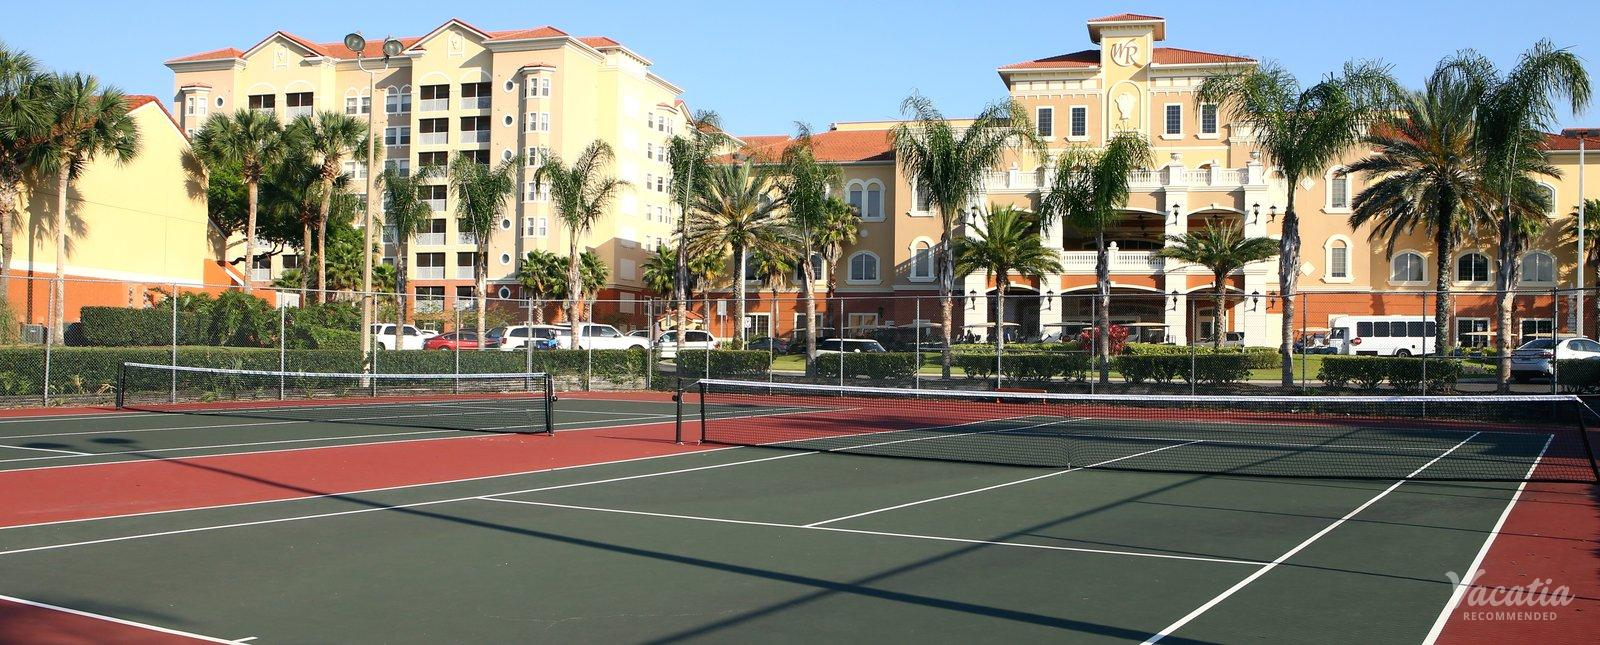 Westgate Town Center resort tennis courts